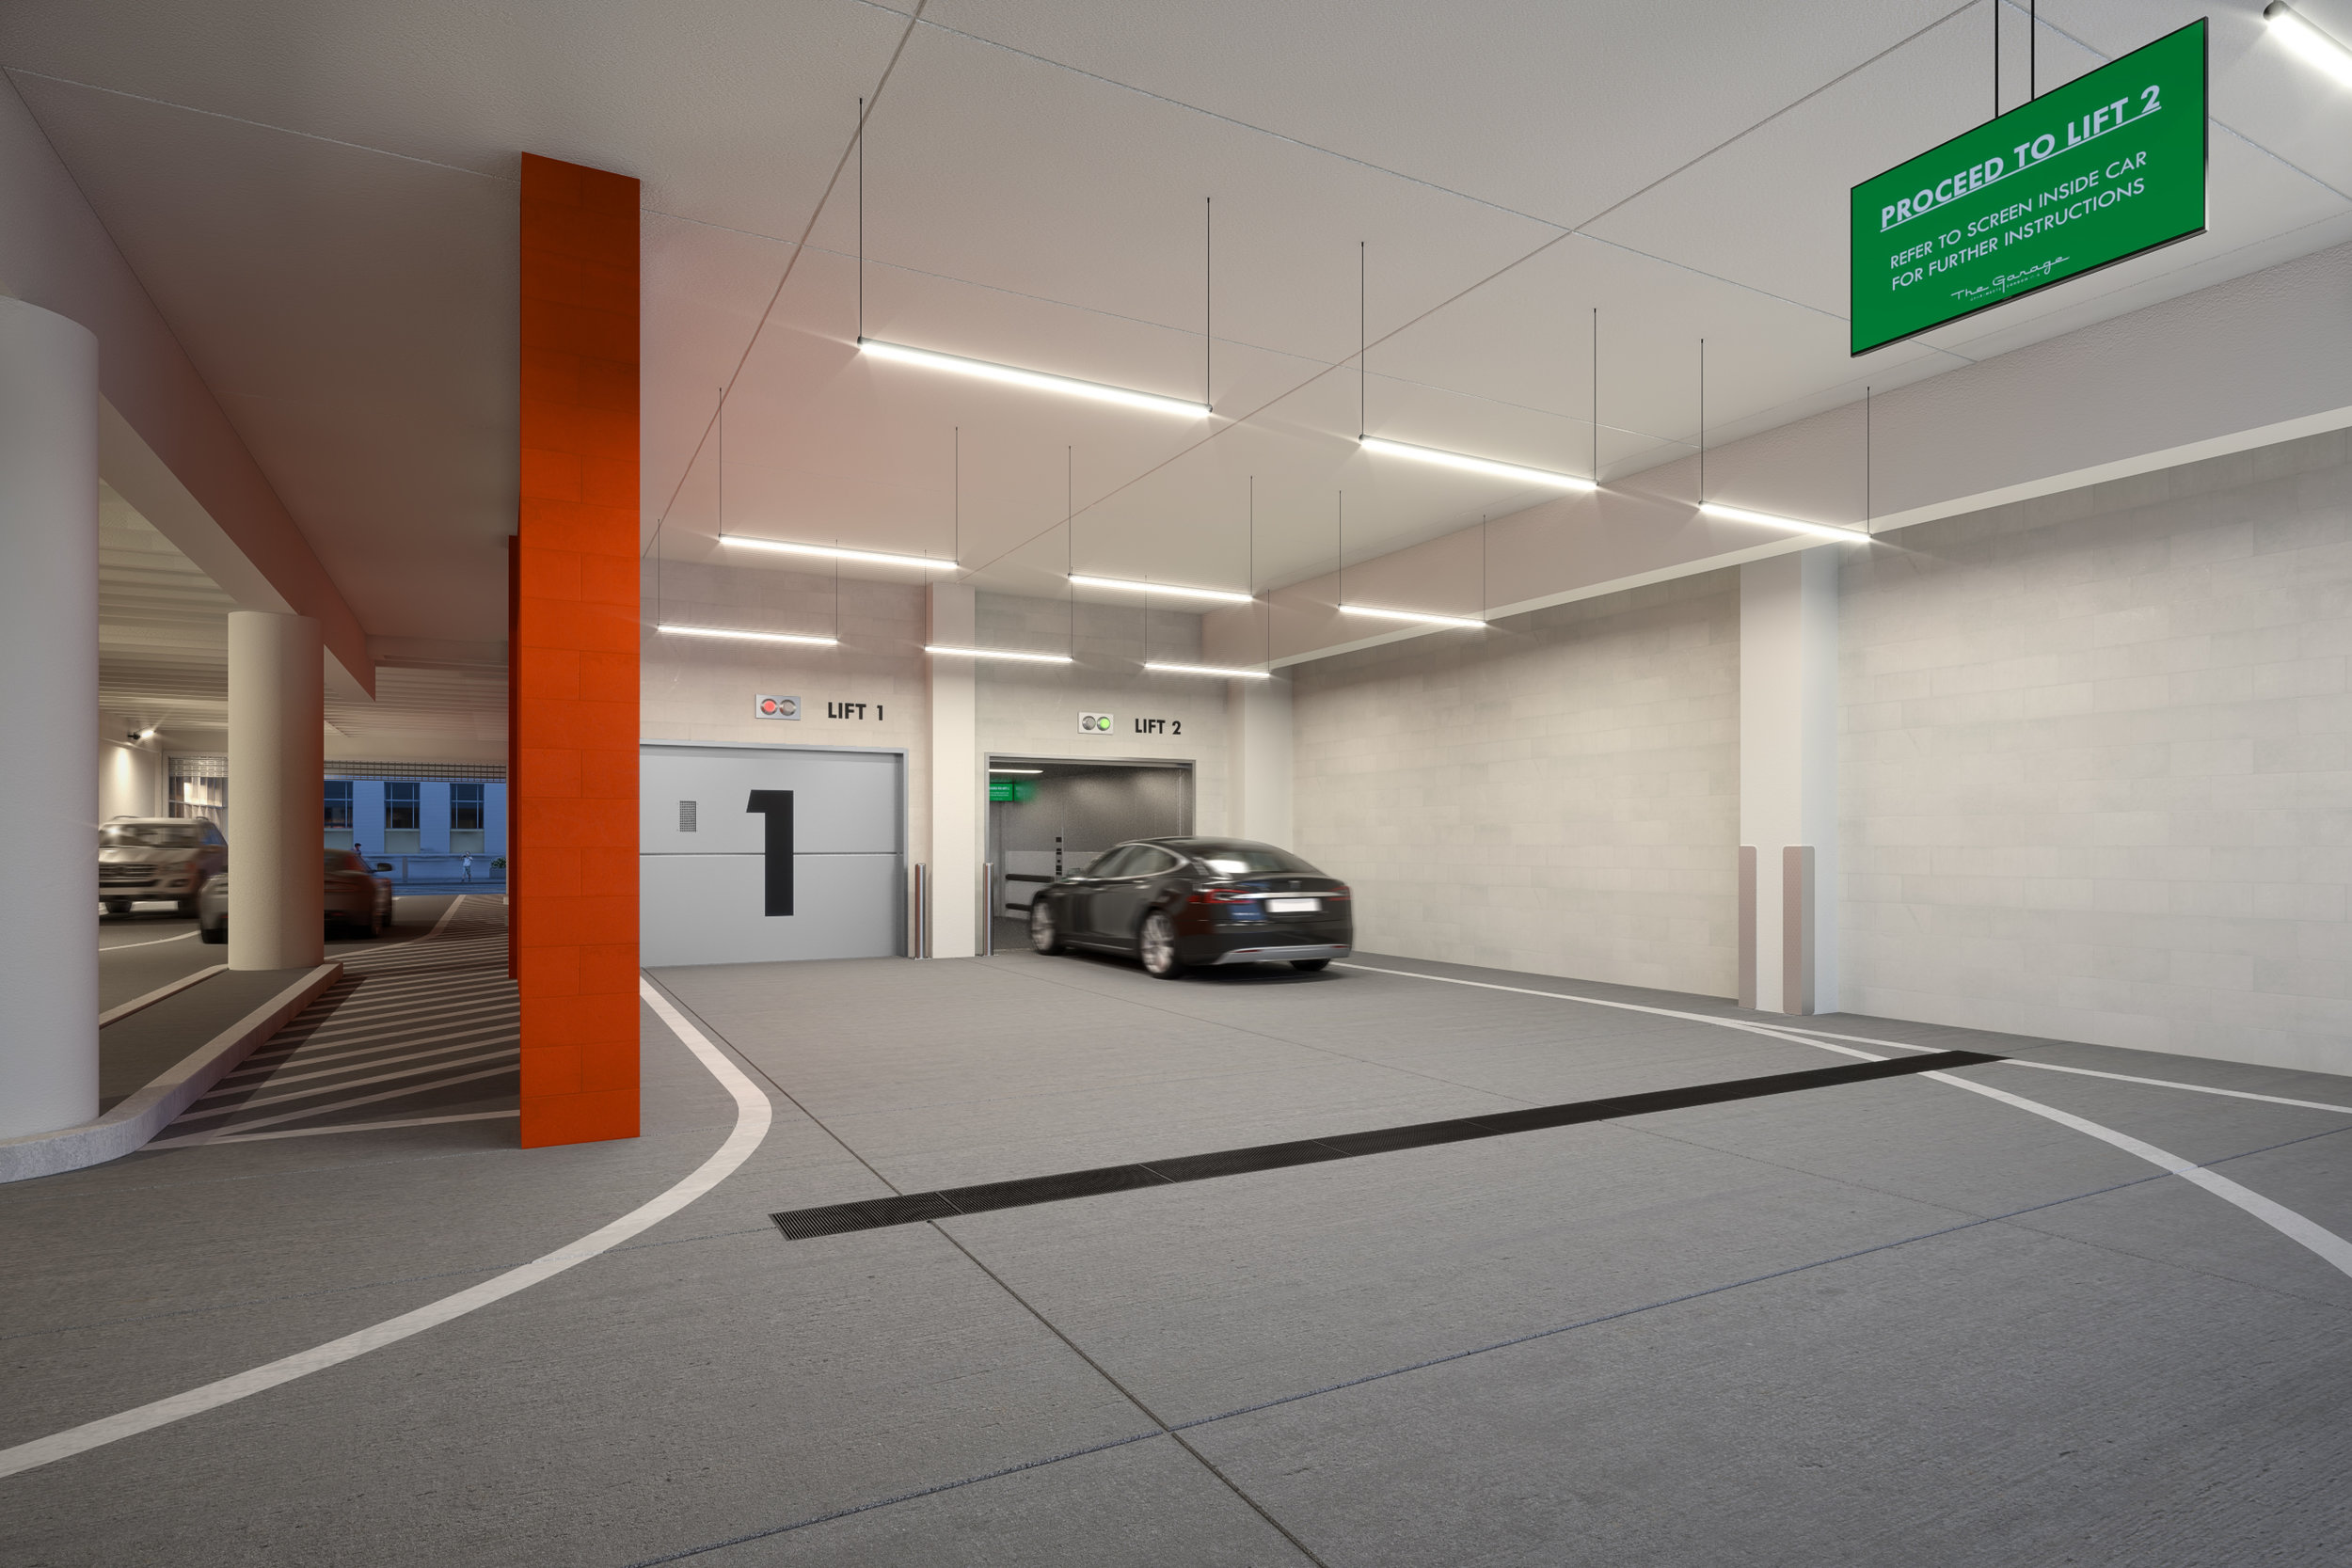 TheGarage_Parking_Interior_Cam1_121318.jpg